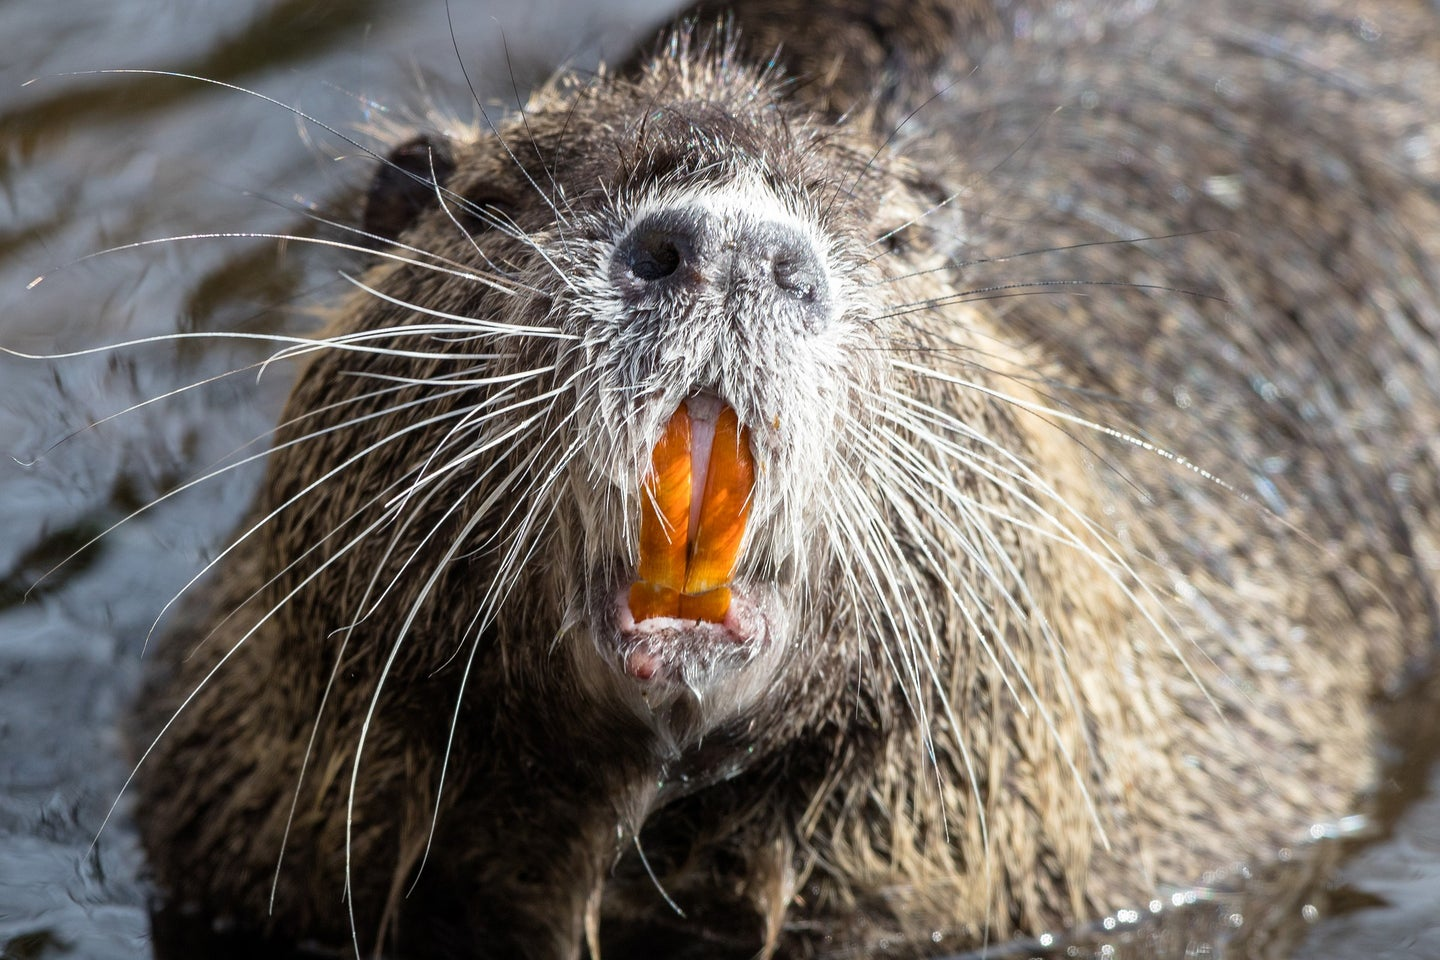 Nutria is an invasive animal that can be turned into dog treats.